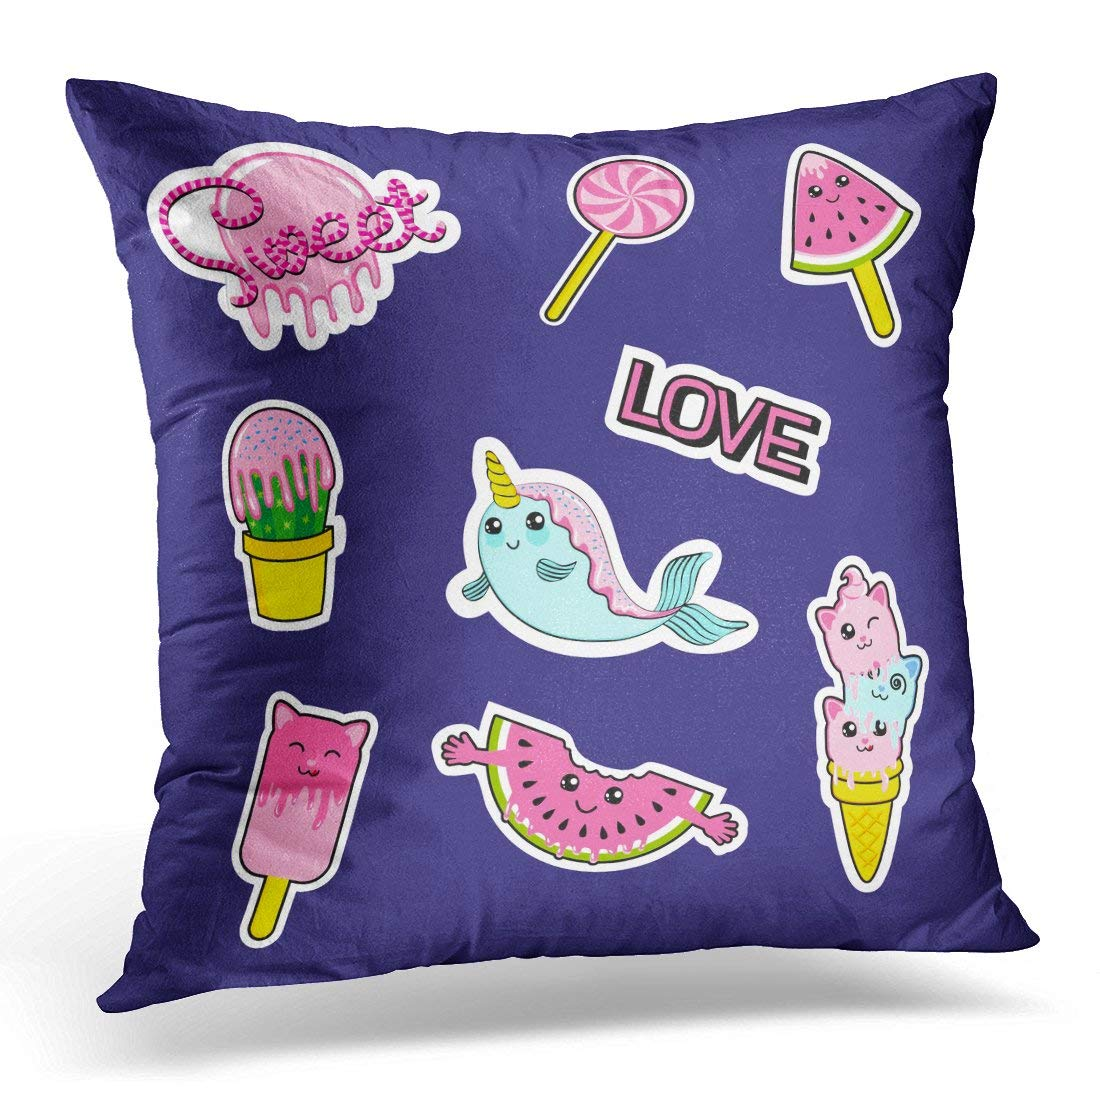 CMFUN Patch Badges with Candies Watermelon Love Cactus Seal Ice Cream Kittens Cats Eyes and Other Very Large Pillow Case Cushion Cover 16x16 Inches